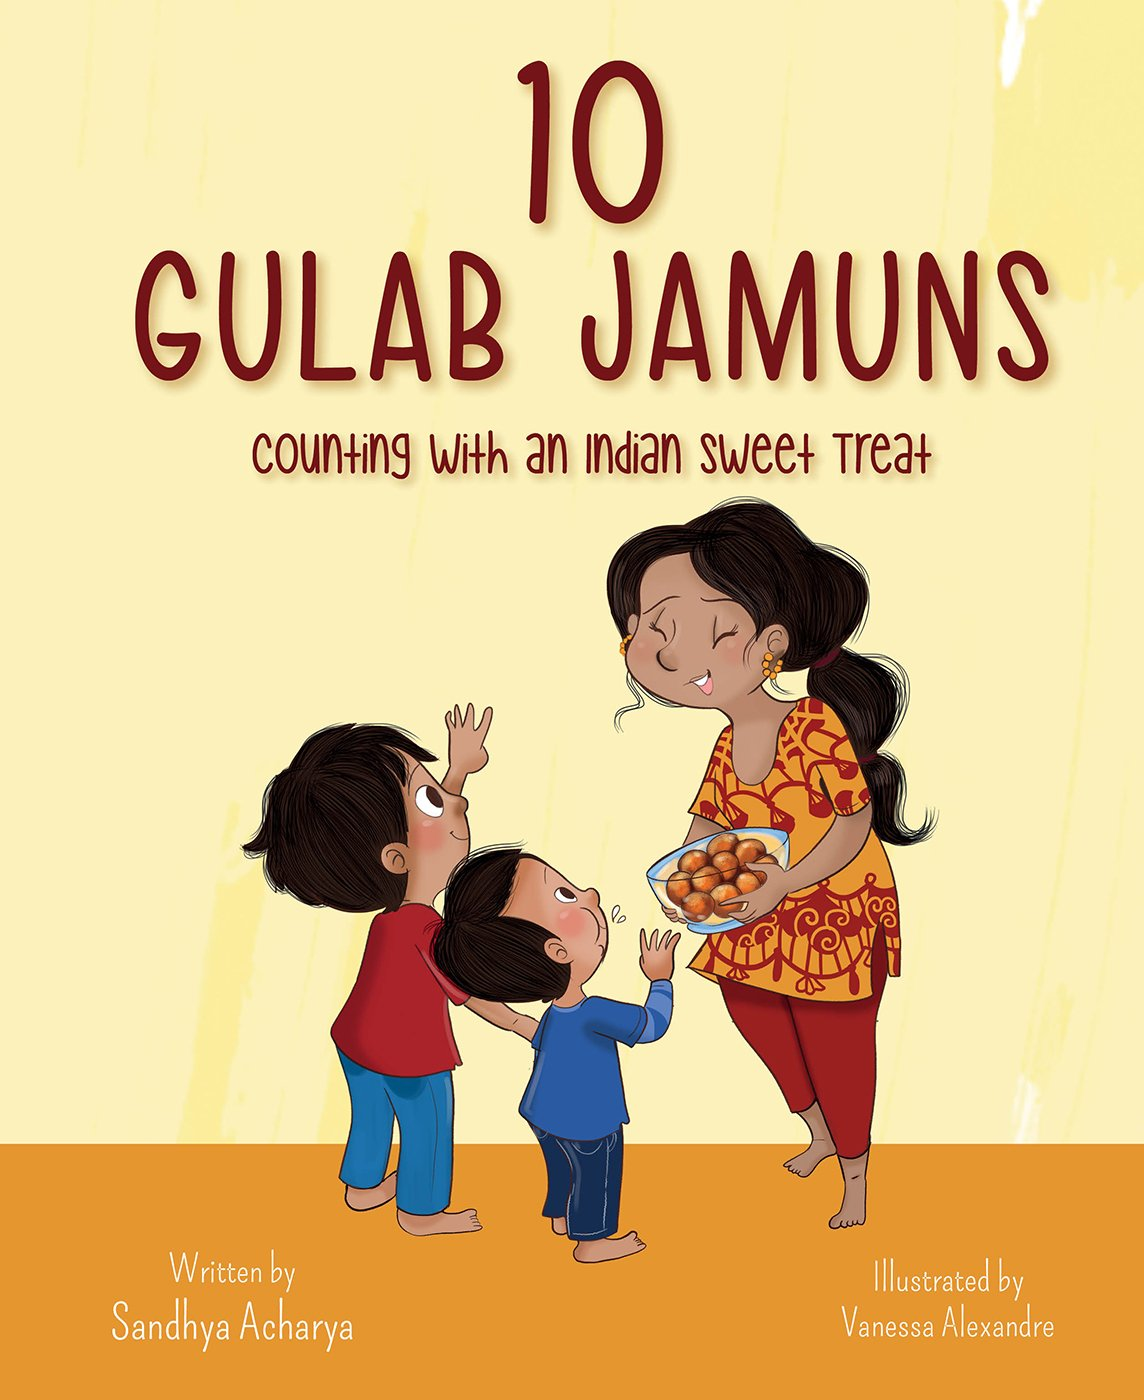 10 Gulab Jamuns: Counting with an Indian Sweet Treat